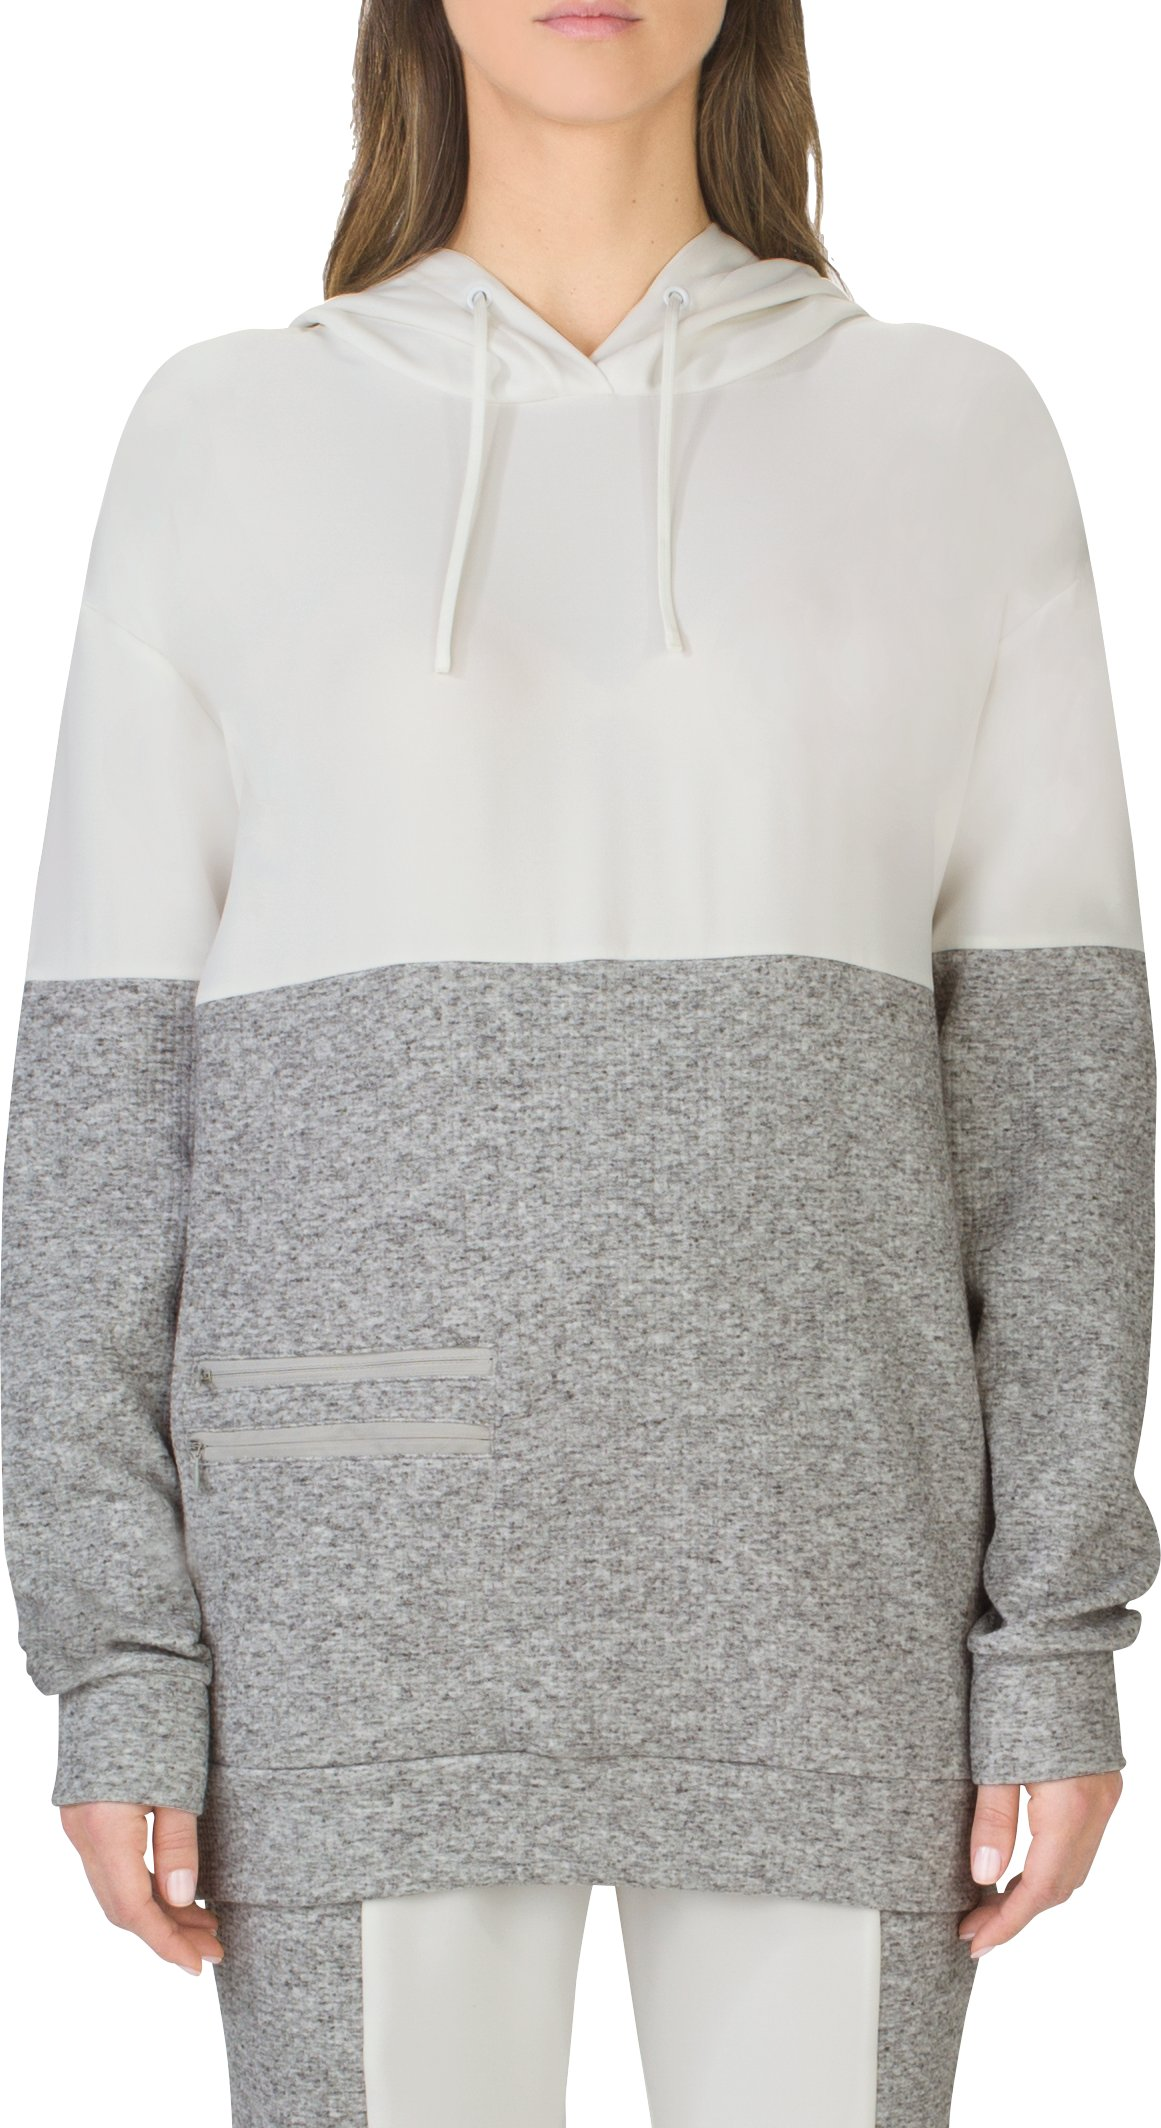 Women's UAS Motion Boyfriend Hoody, White, undefined